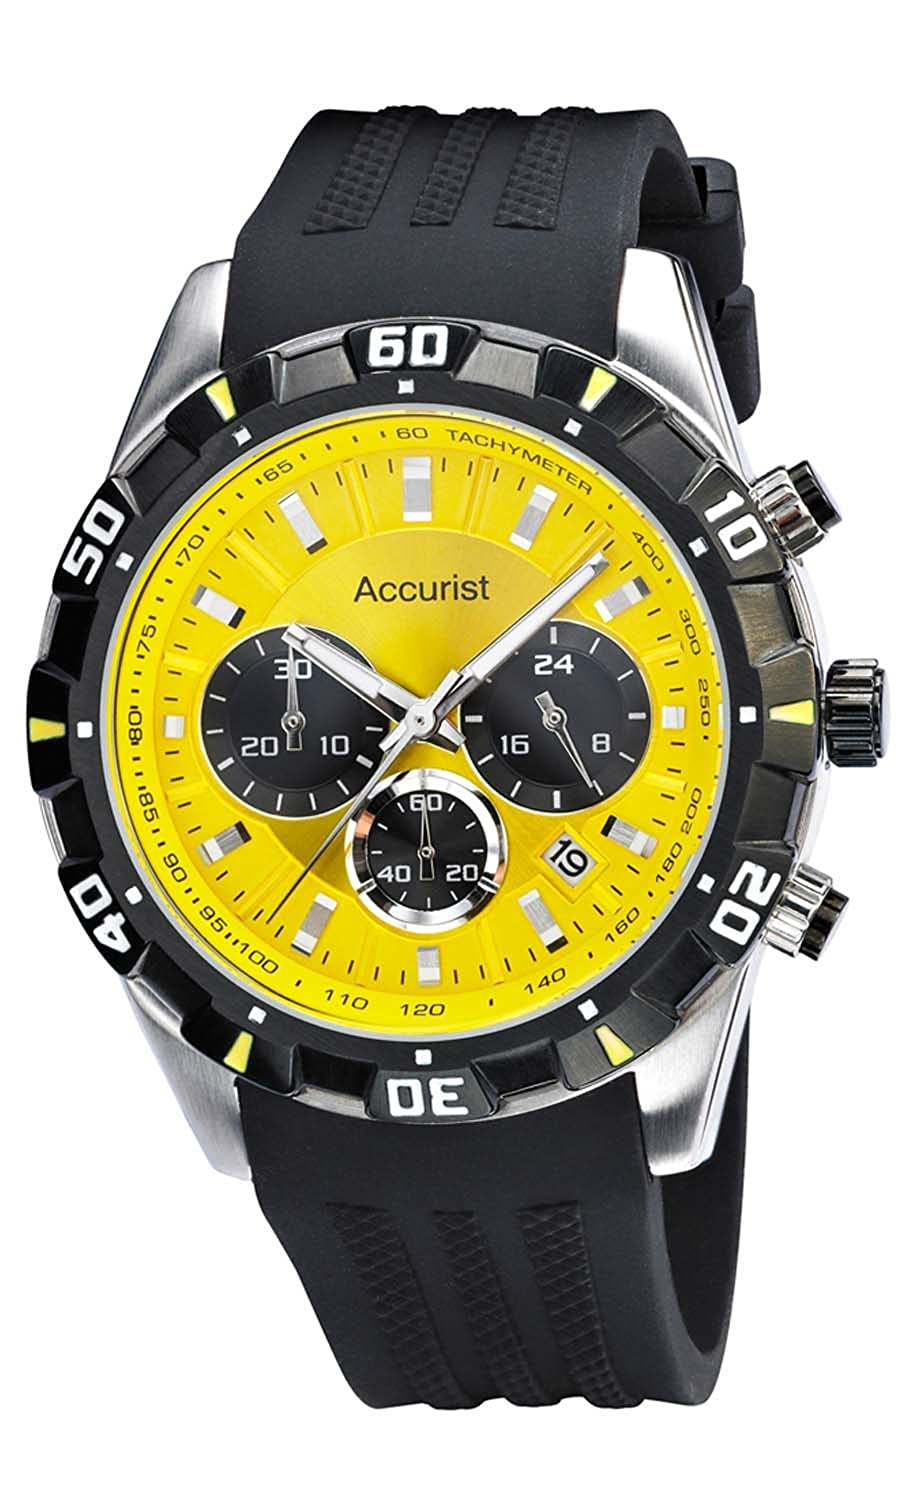 amazon watches wrist watch ricci casual yellow dial ca bianci men s analog roberto